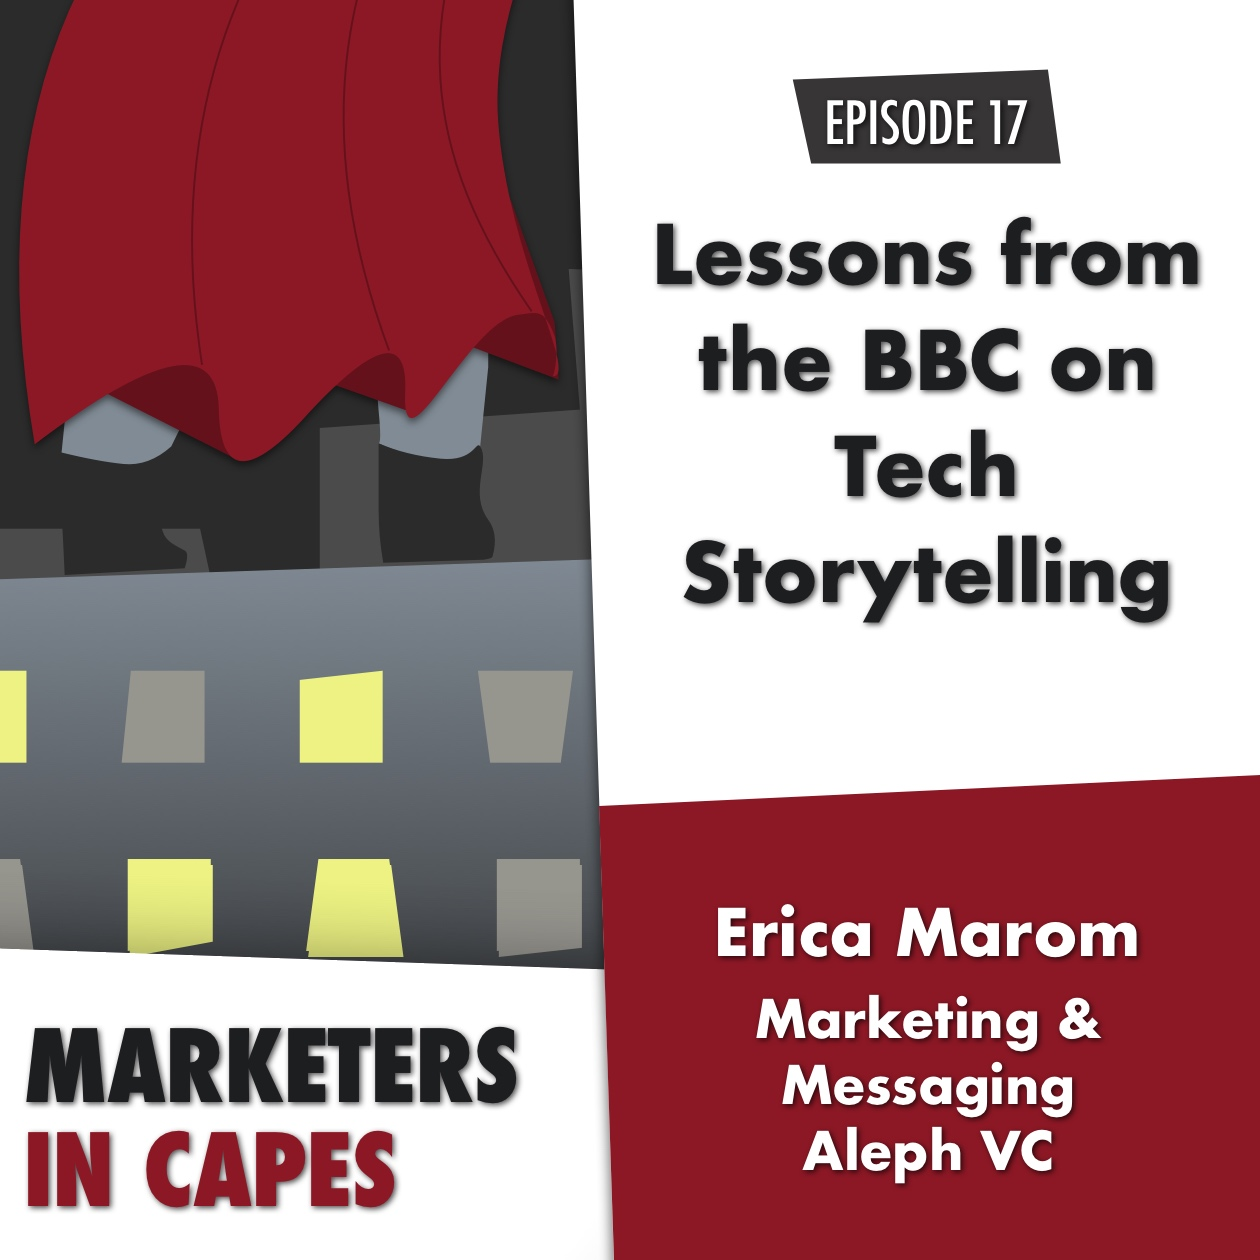 Lessons from the BBC on Tech Storytelling with Erica Marcom from Aleph VC E. 17